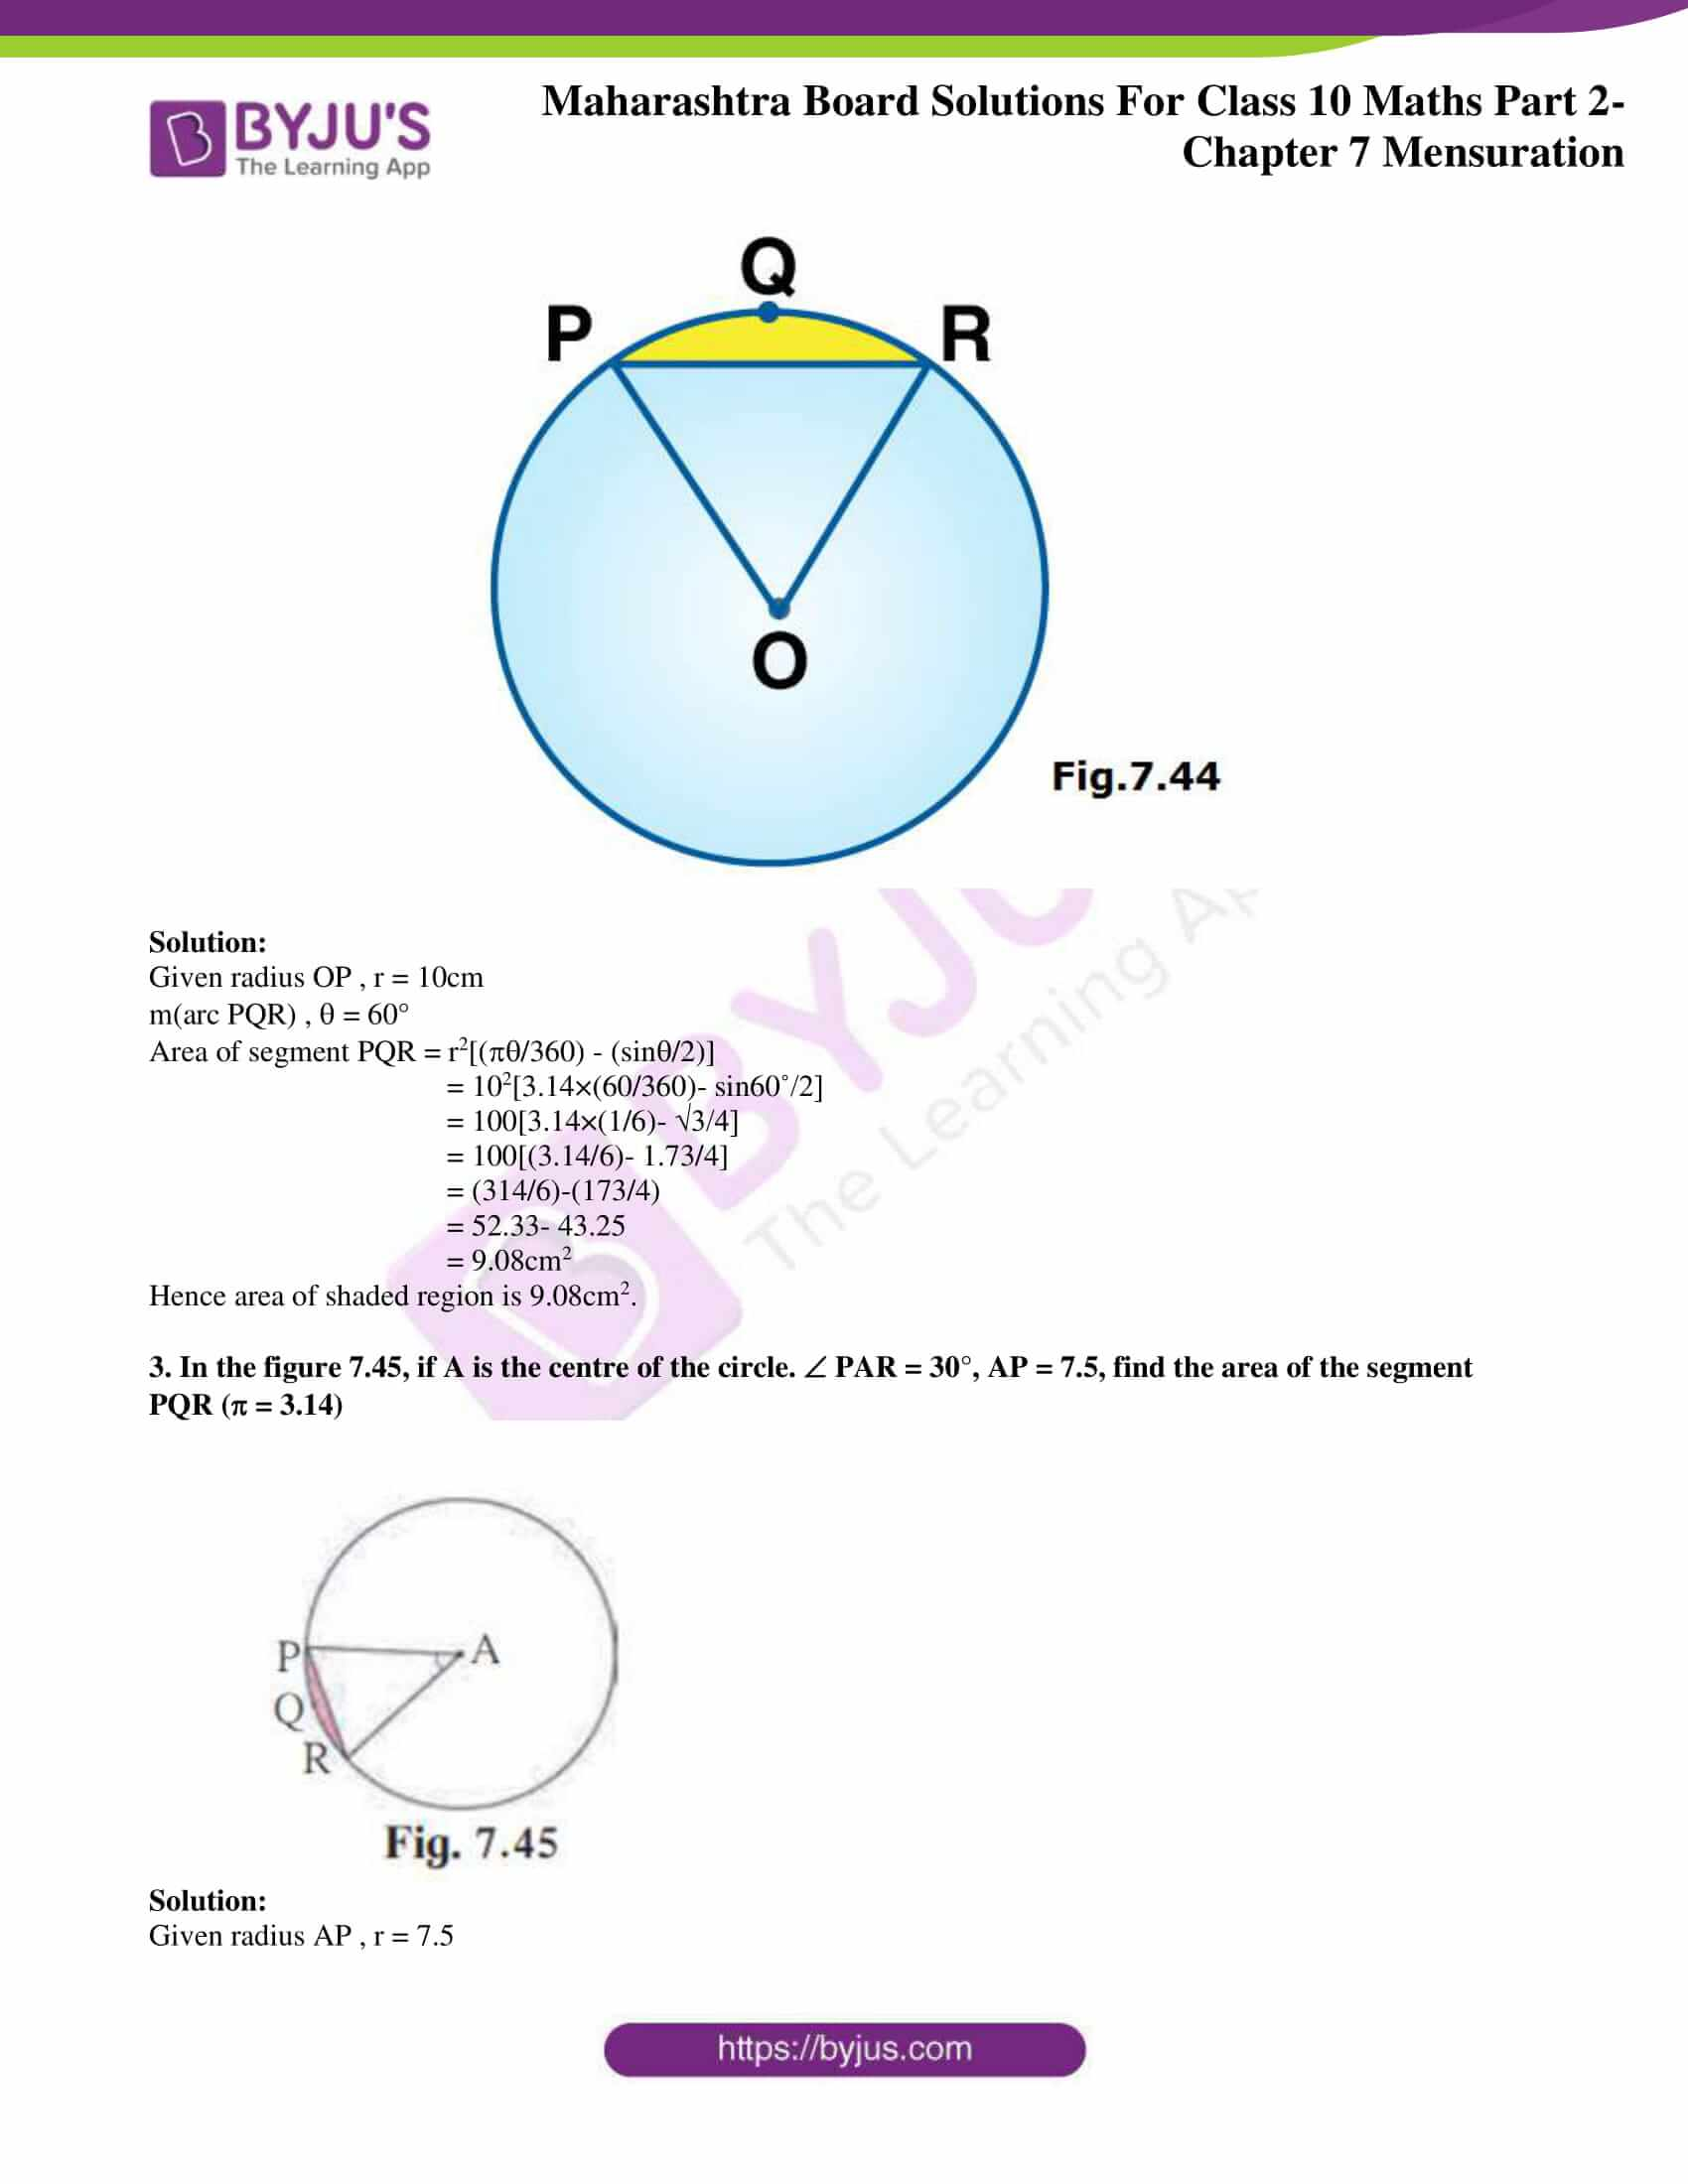 msbshse sol class 10 maths part 2 chapter 7 19